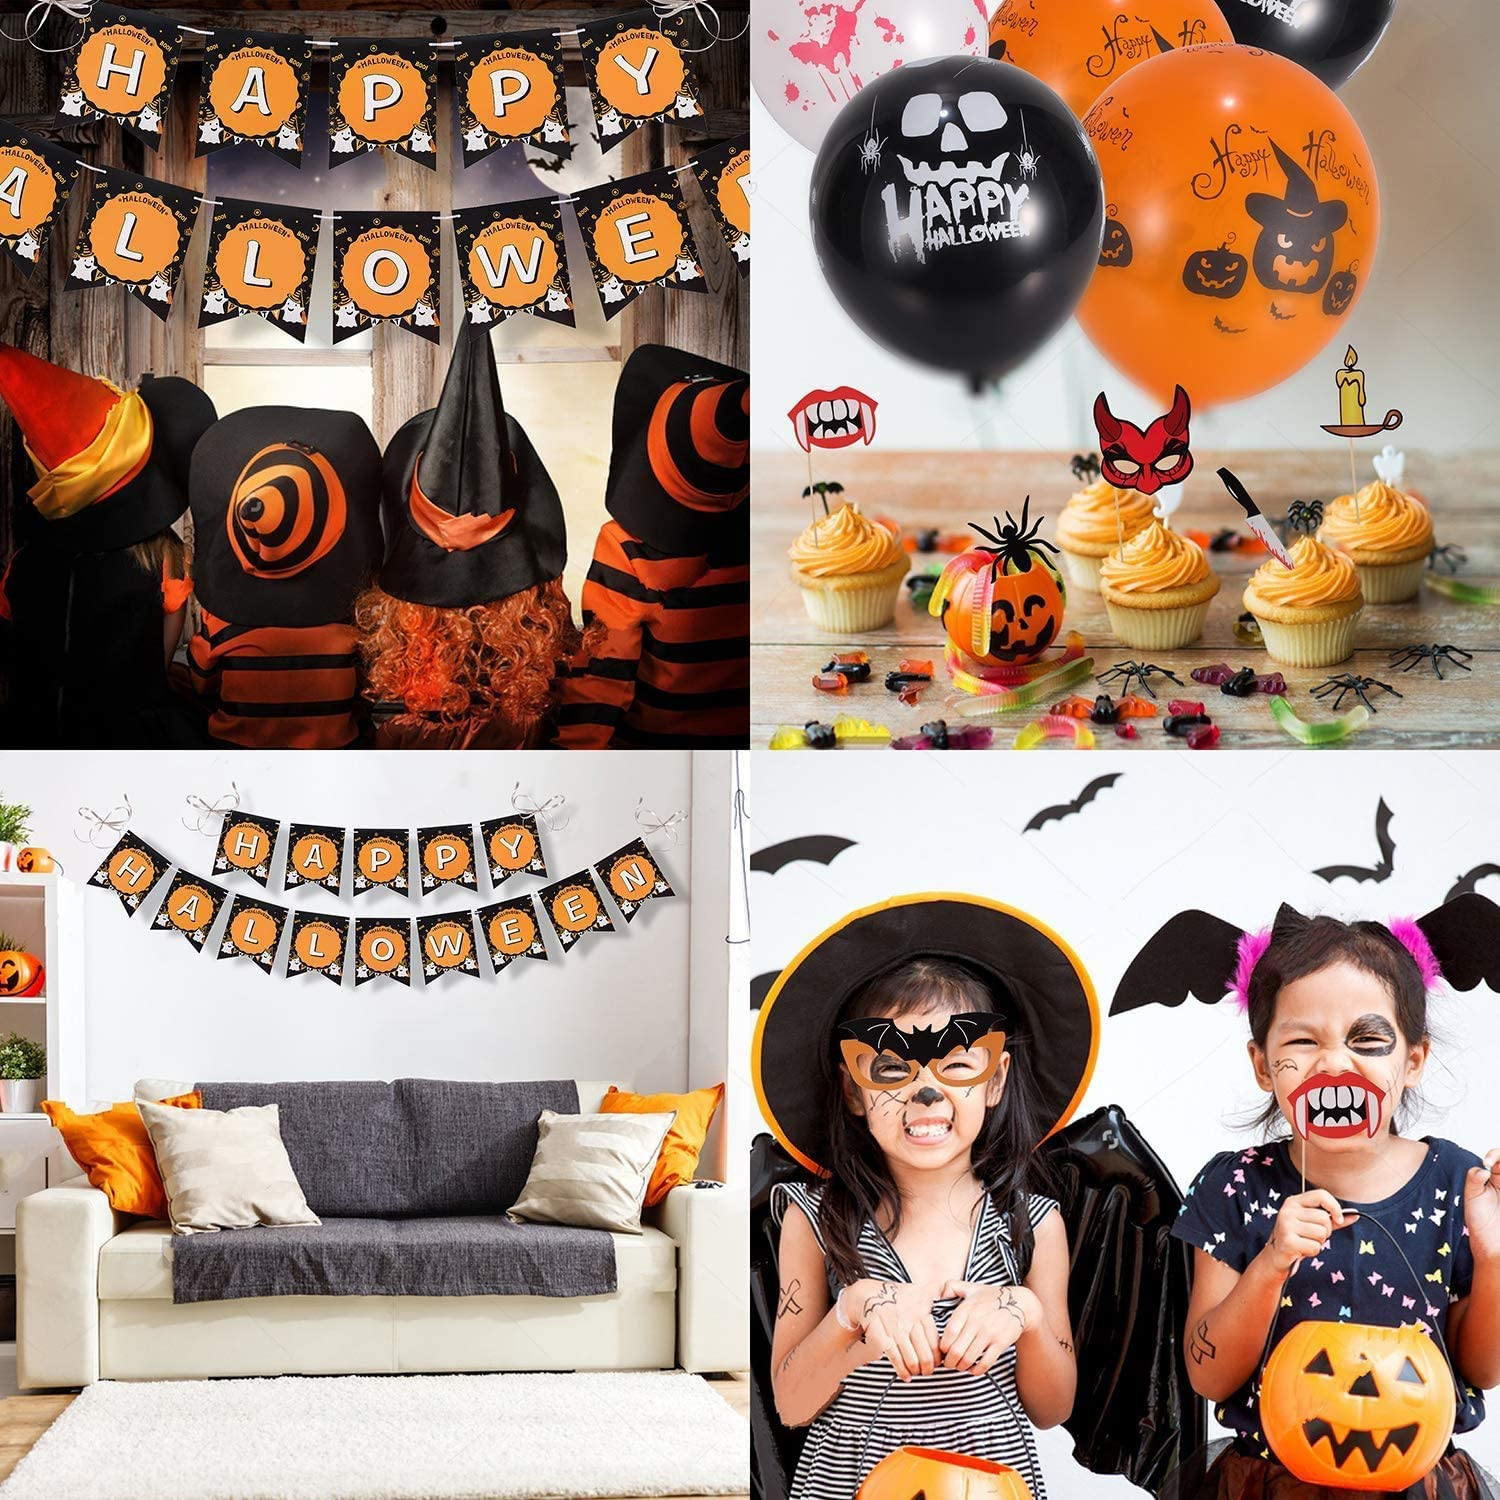 Photo Booth Props and Paper Garlands Genrics Halloween Party Decoration Supplies Favors Include Happy Halloween Banner Latex Balloons